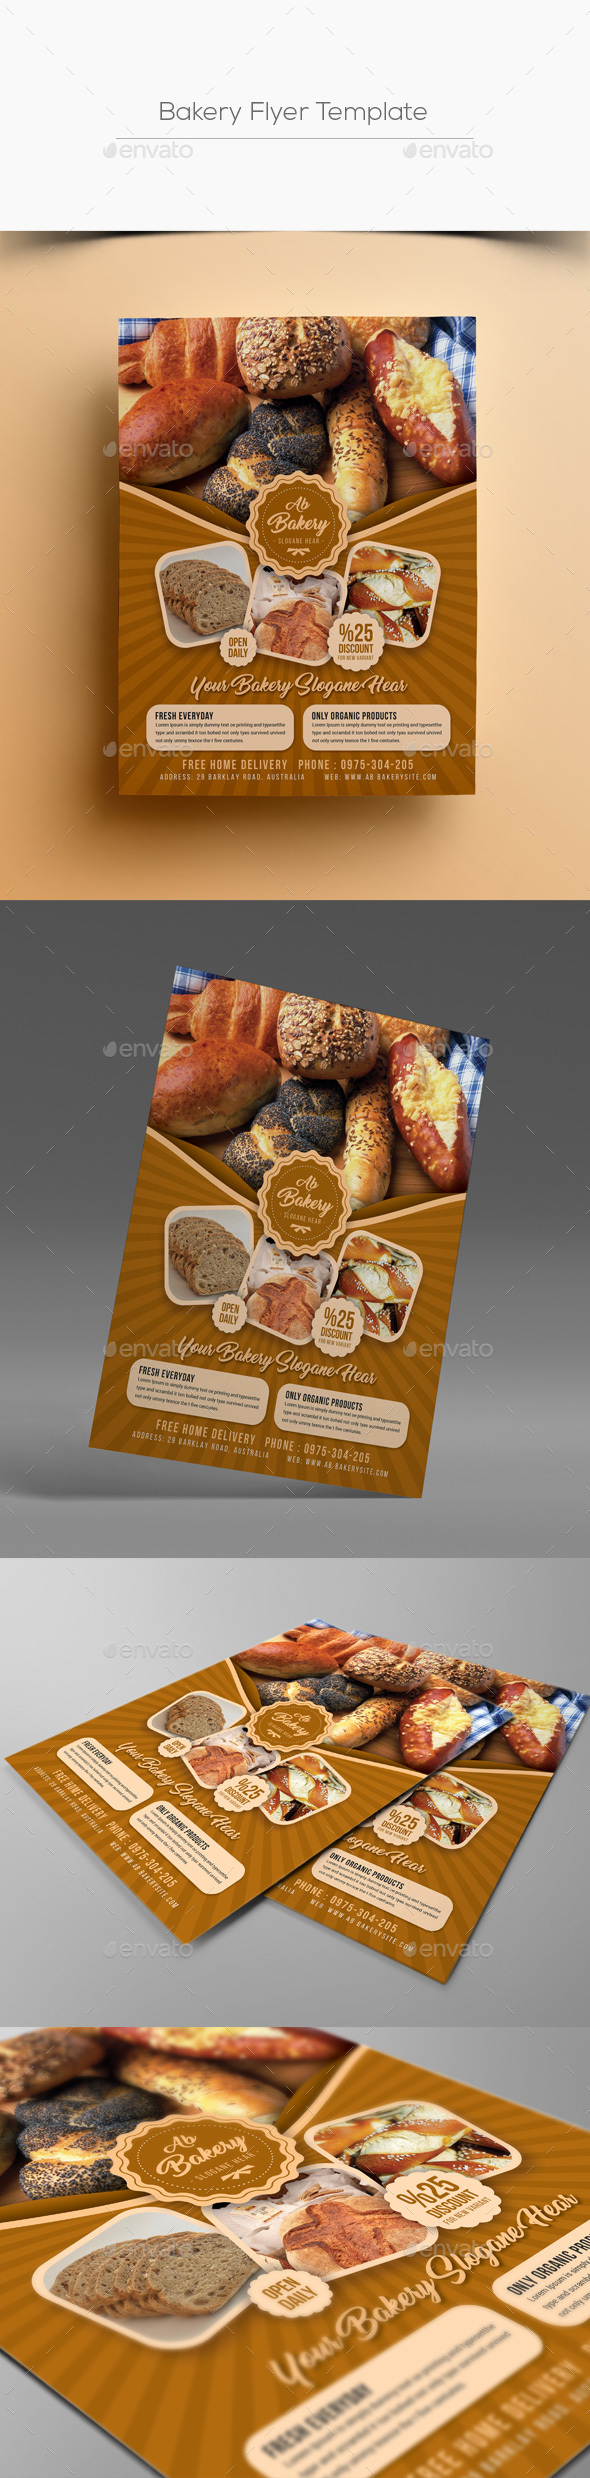 Bakery Flyer Template By Designsoul GraphicRiver - Bakery brochure template